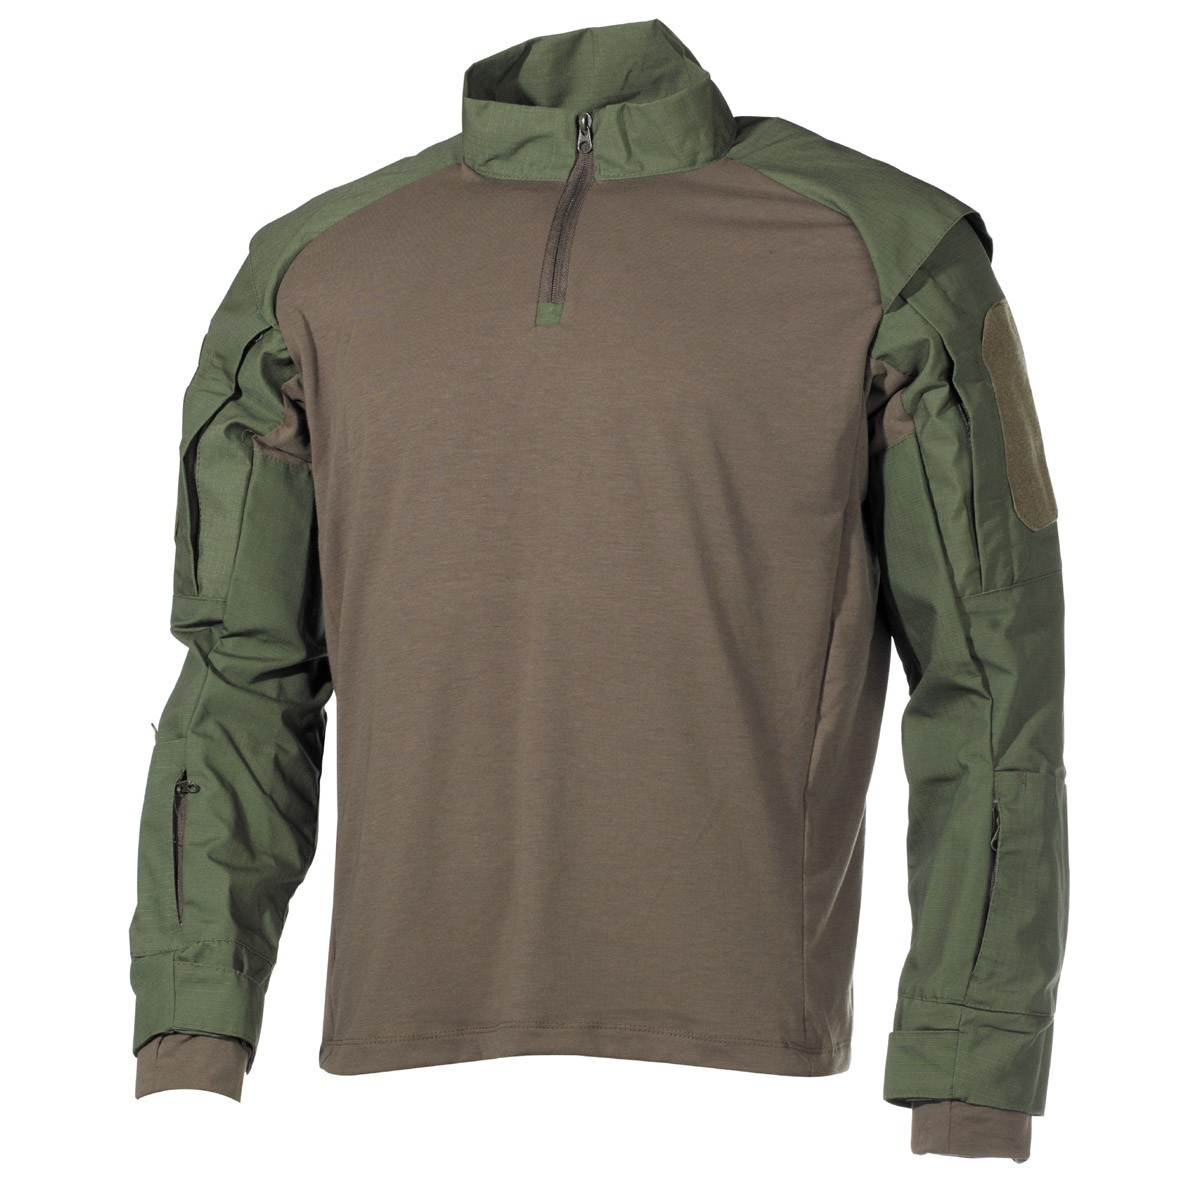 Tactical Military Battle UBACS T-Shirt - OD Green